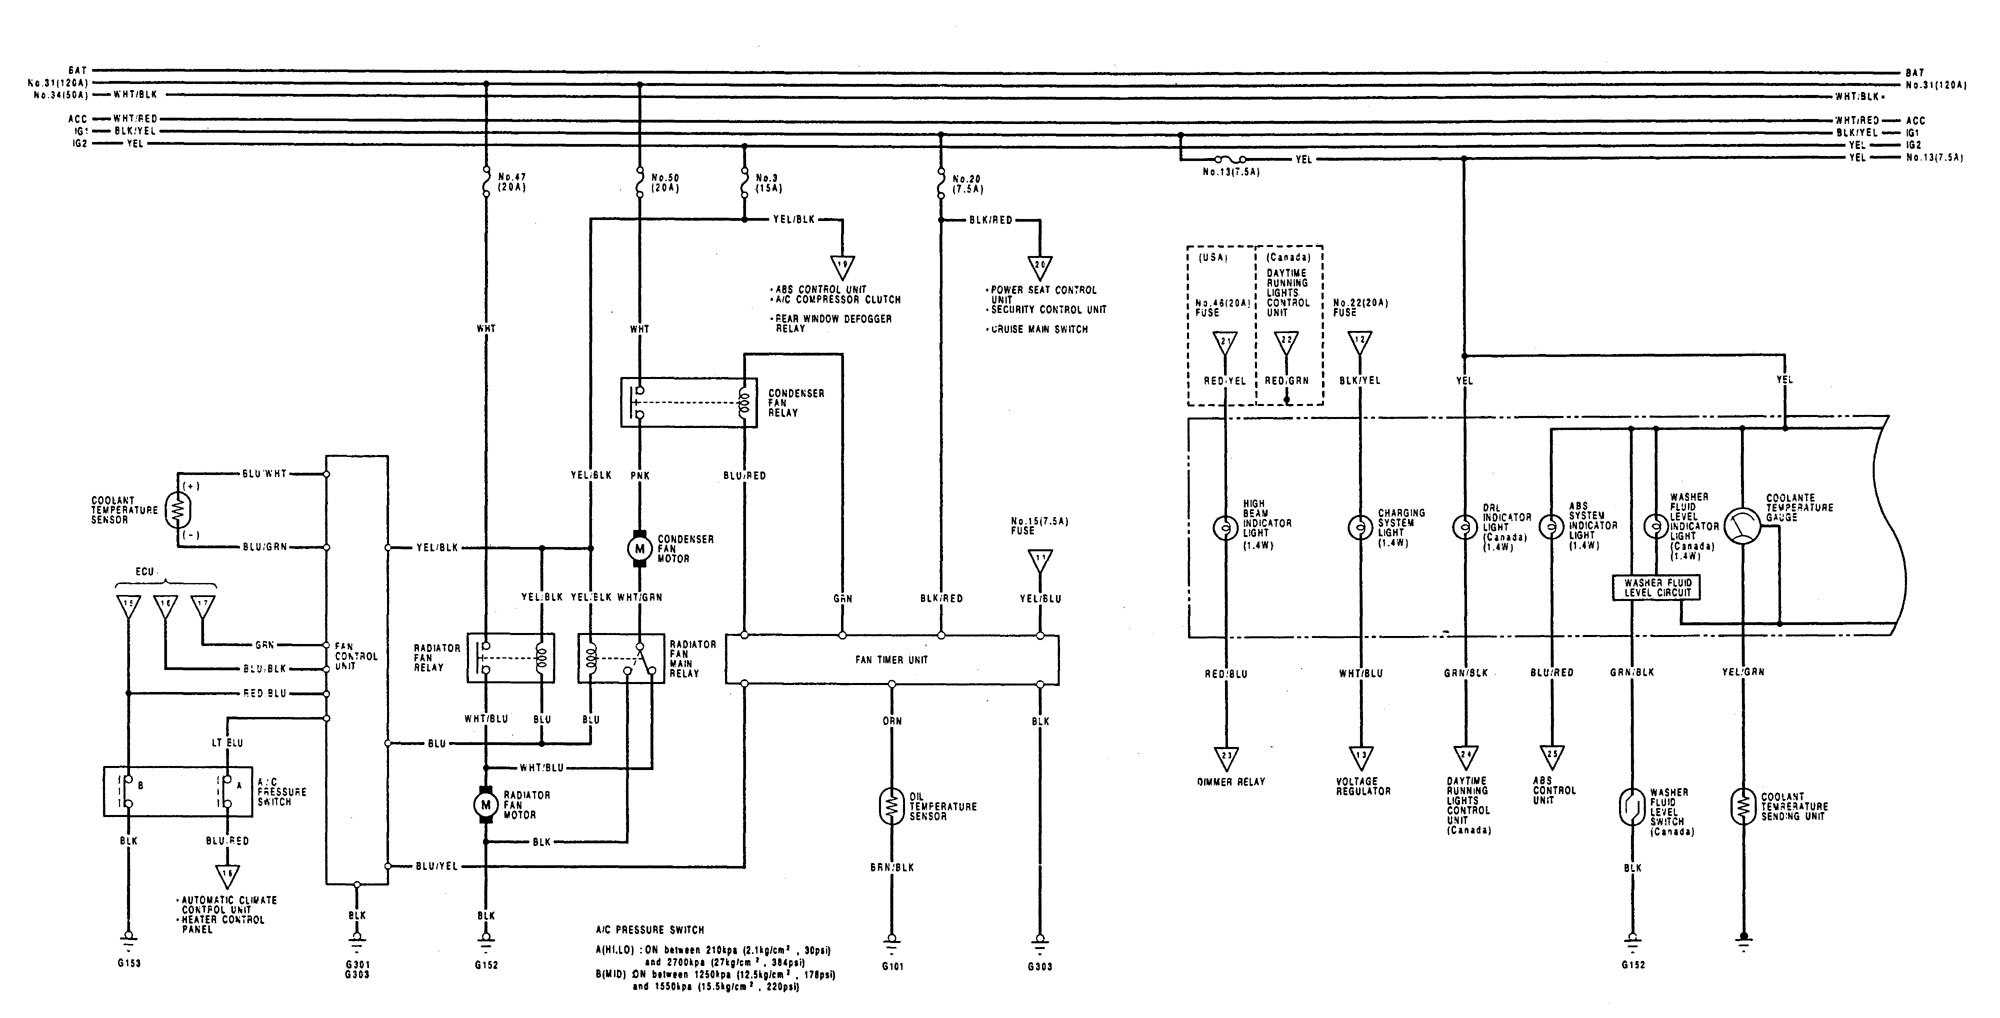 Acura Legend (1992) - wiring diagrams - cooling fans - Carknowledge.info | Acura Legend Fuel Pump Wiring Diagram |  | Carknowledge.info